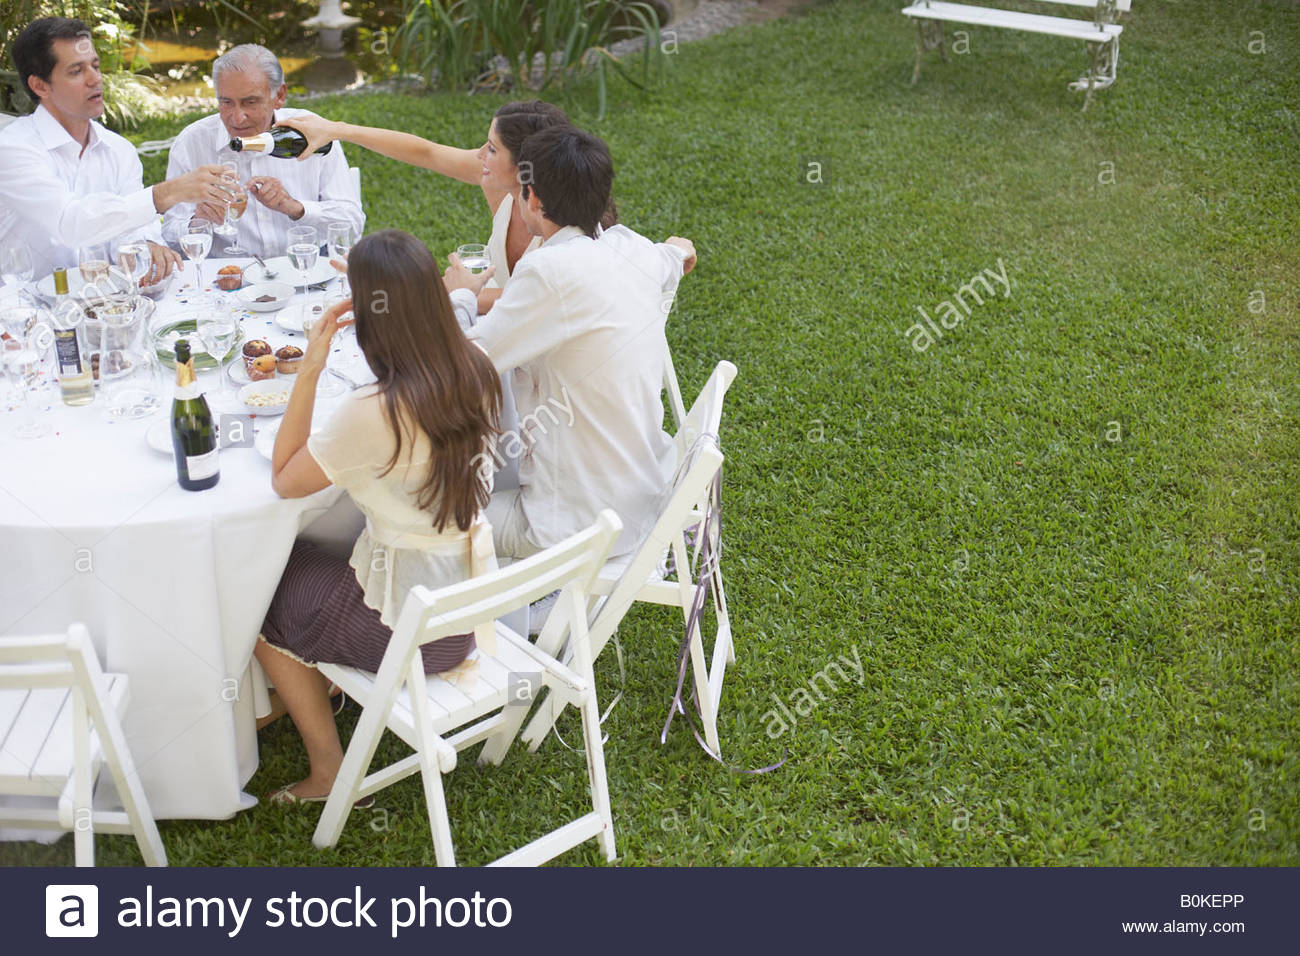 five people at outdoor party socially drinking - Stock Image